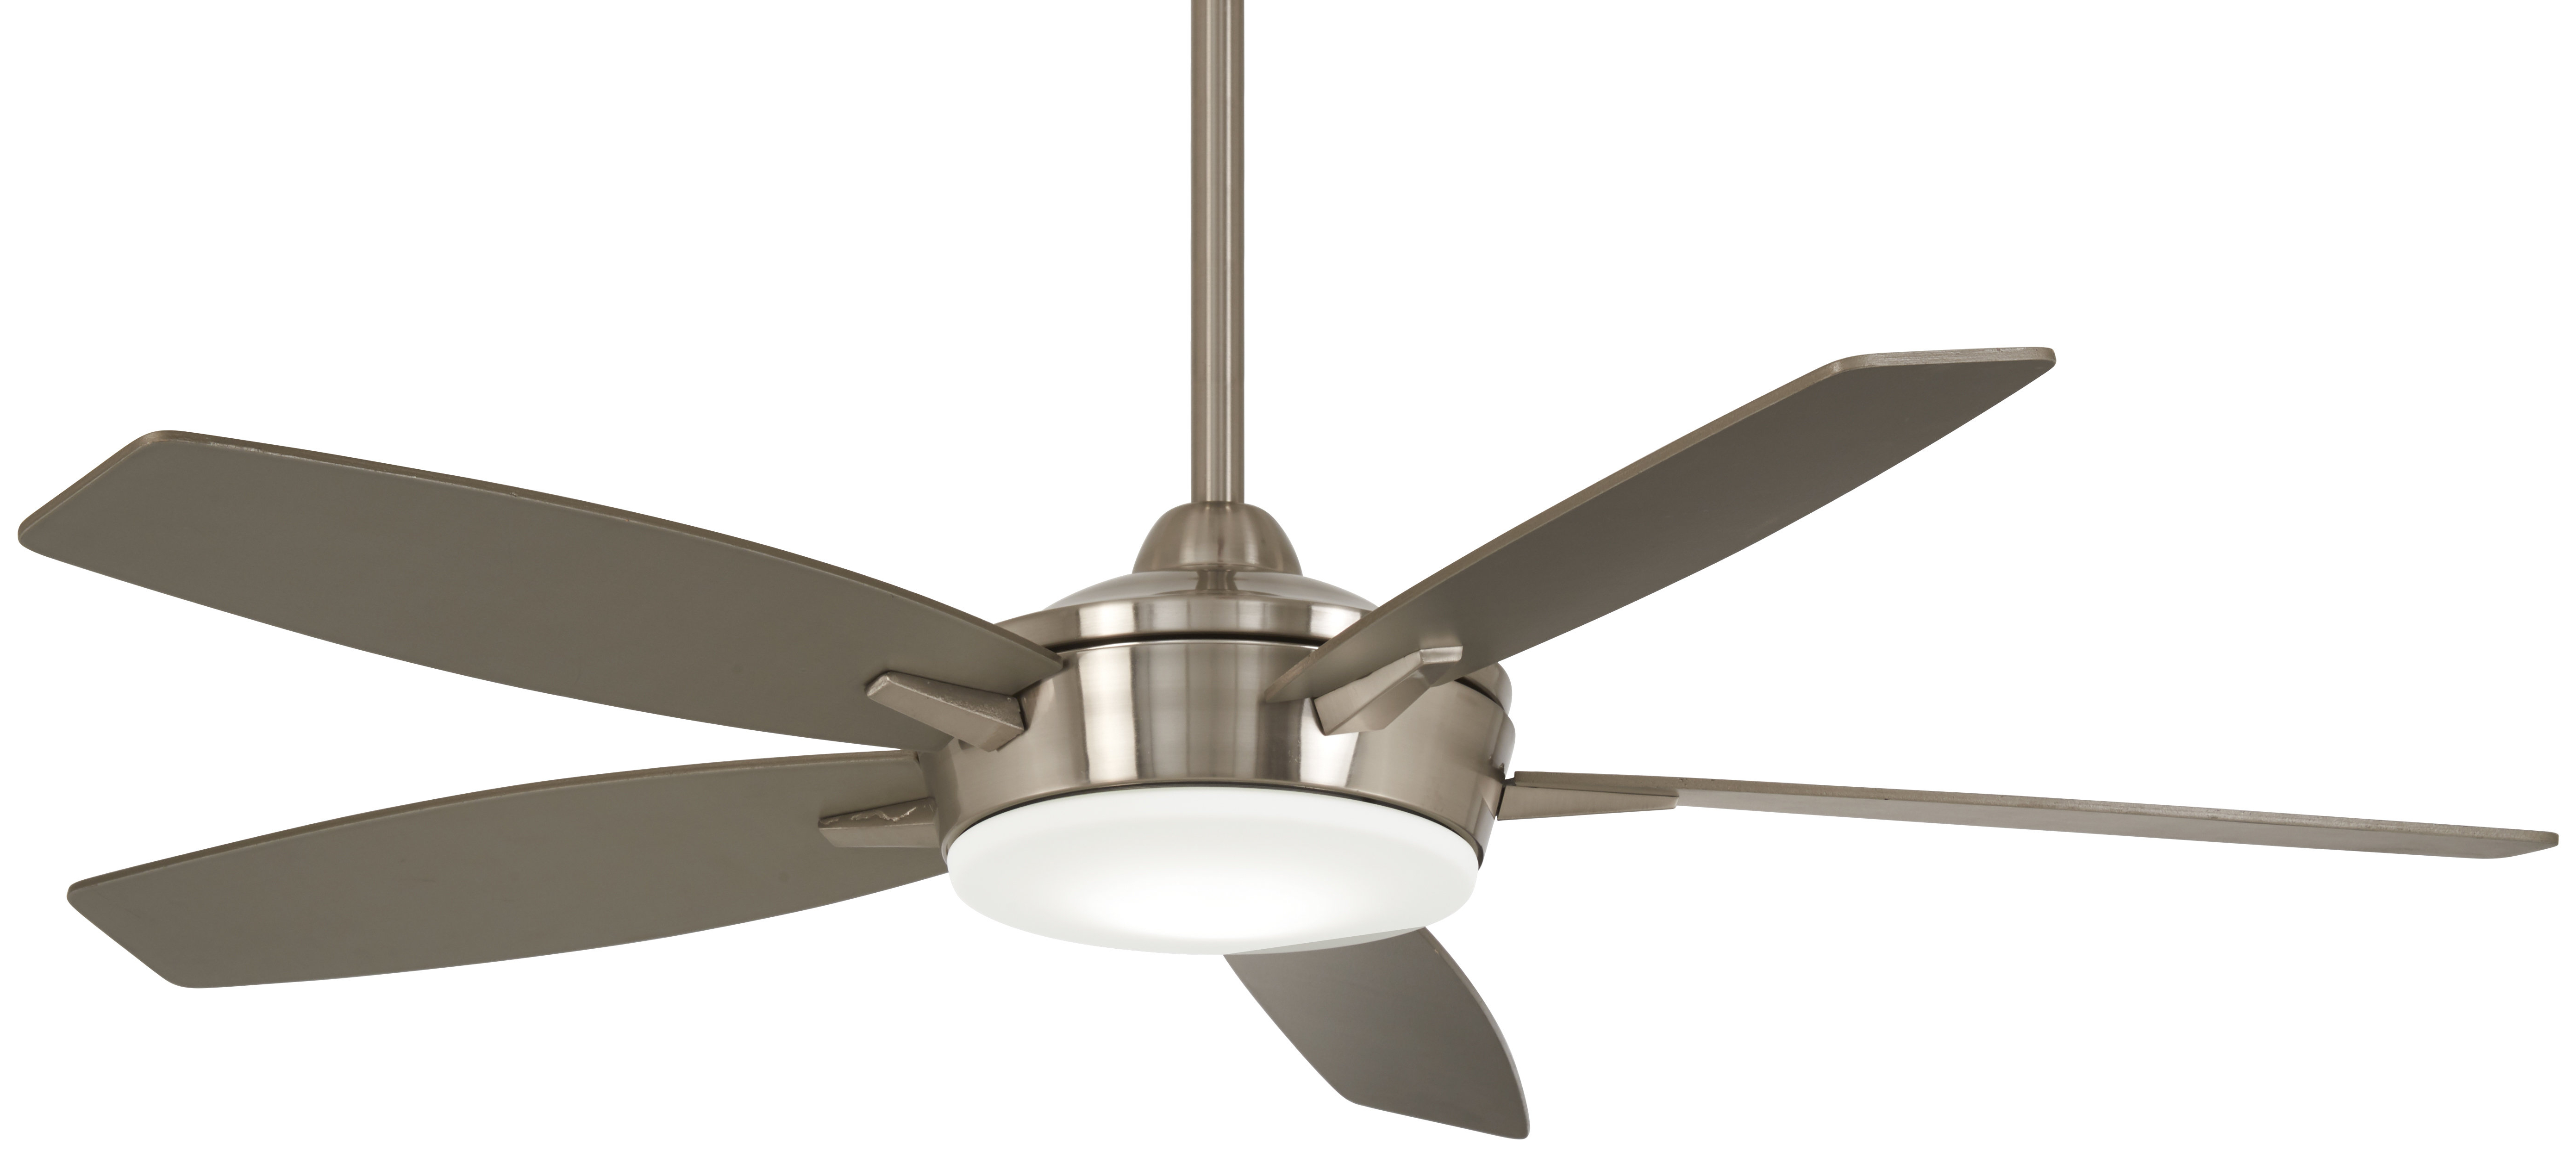 """Concept 3 Blade Led Ceiling Fans Regarding Latest 52"""" Espace 5 Blade Led Ceiling Fan With Remote (View 7 of 20)"""